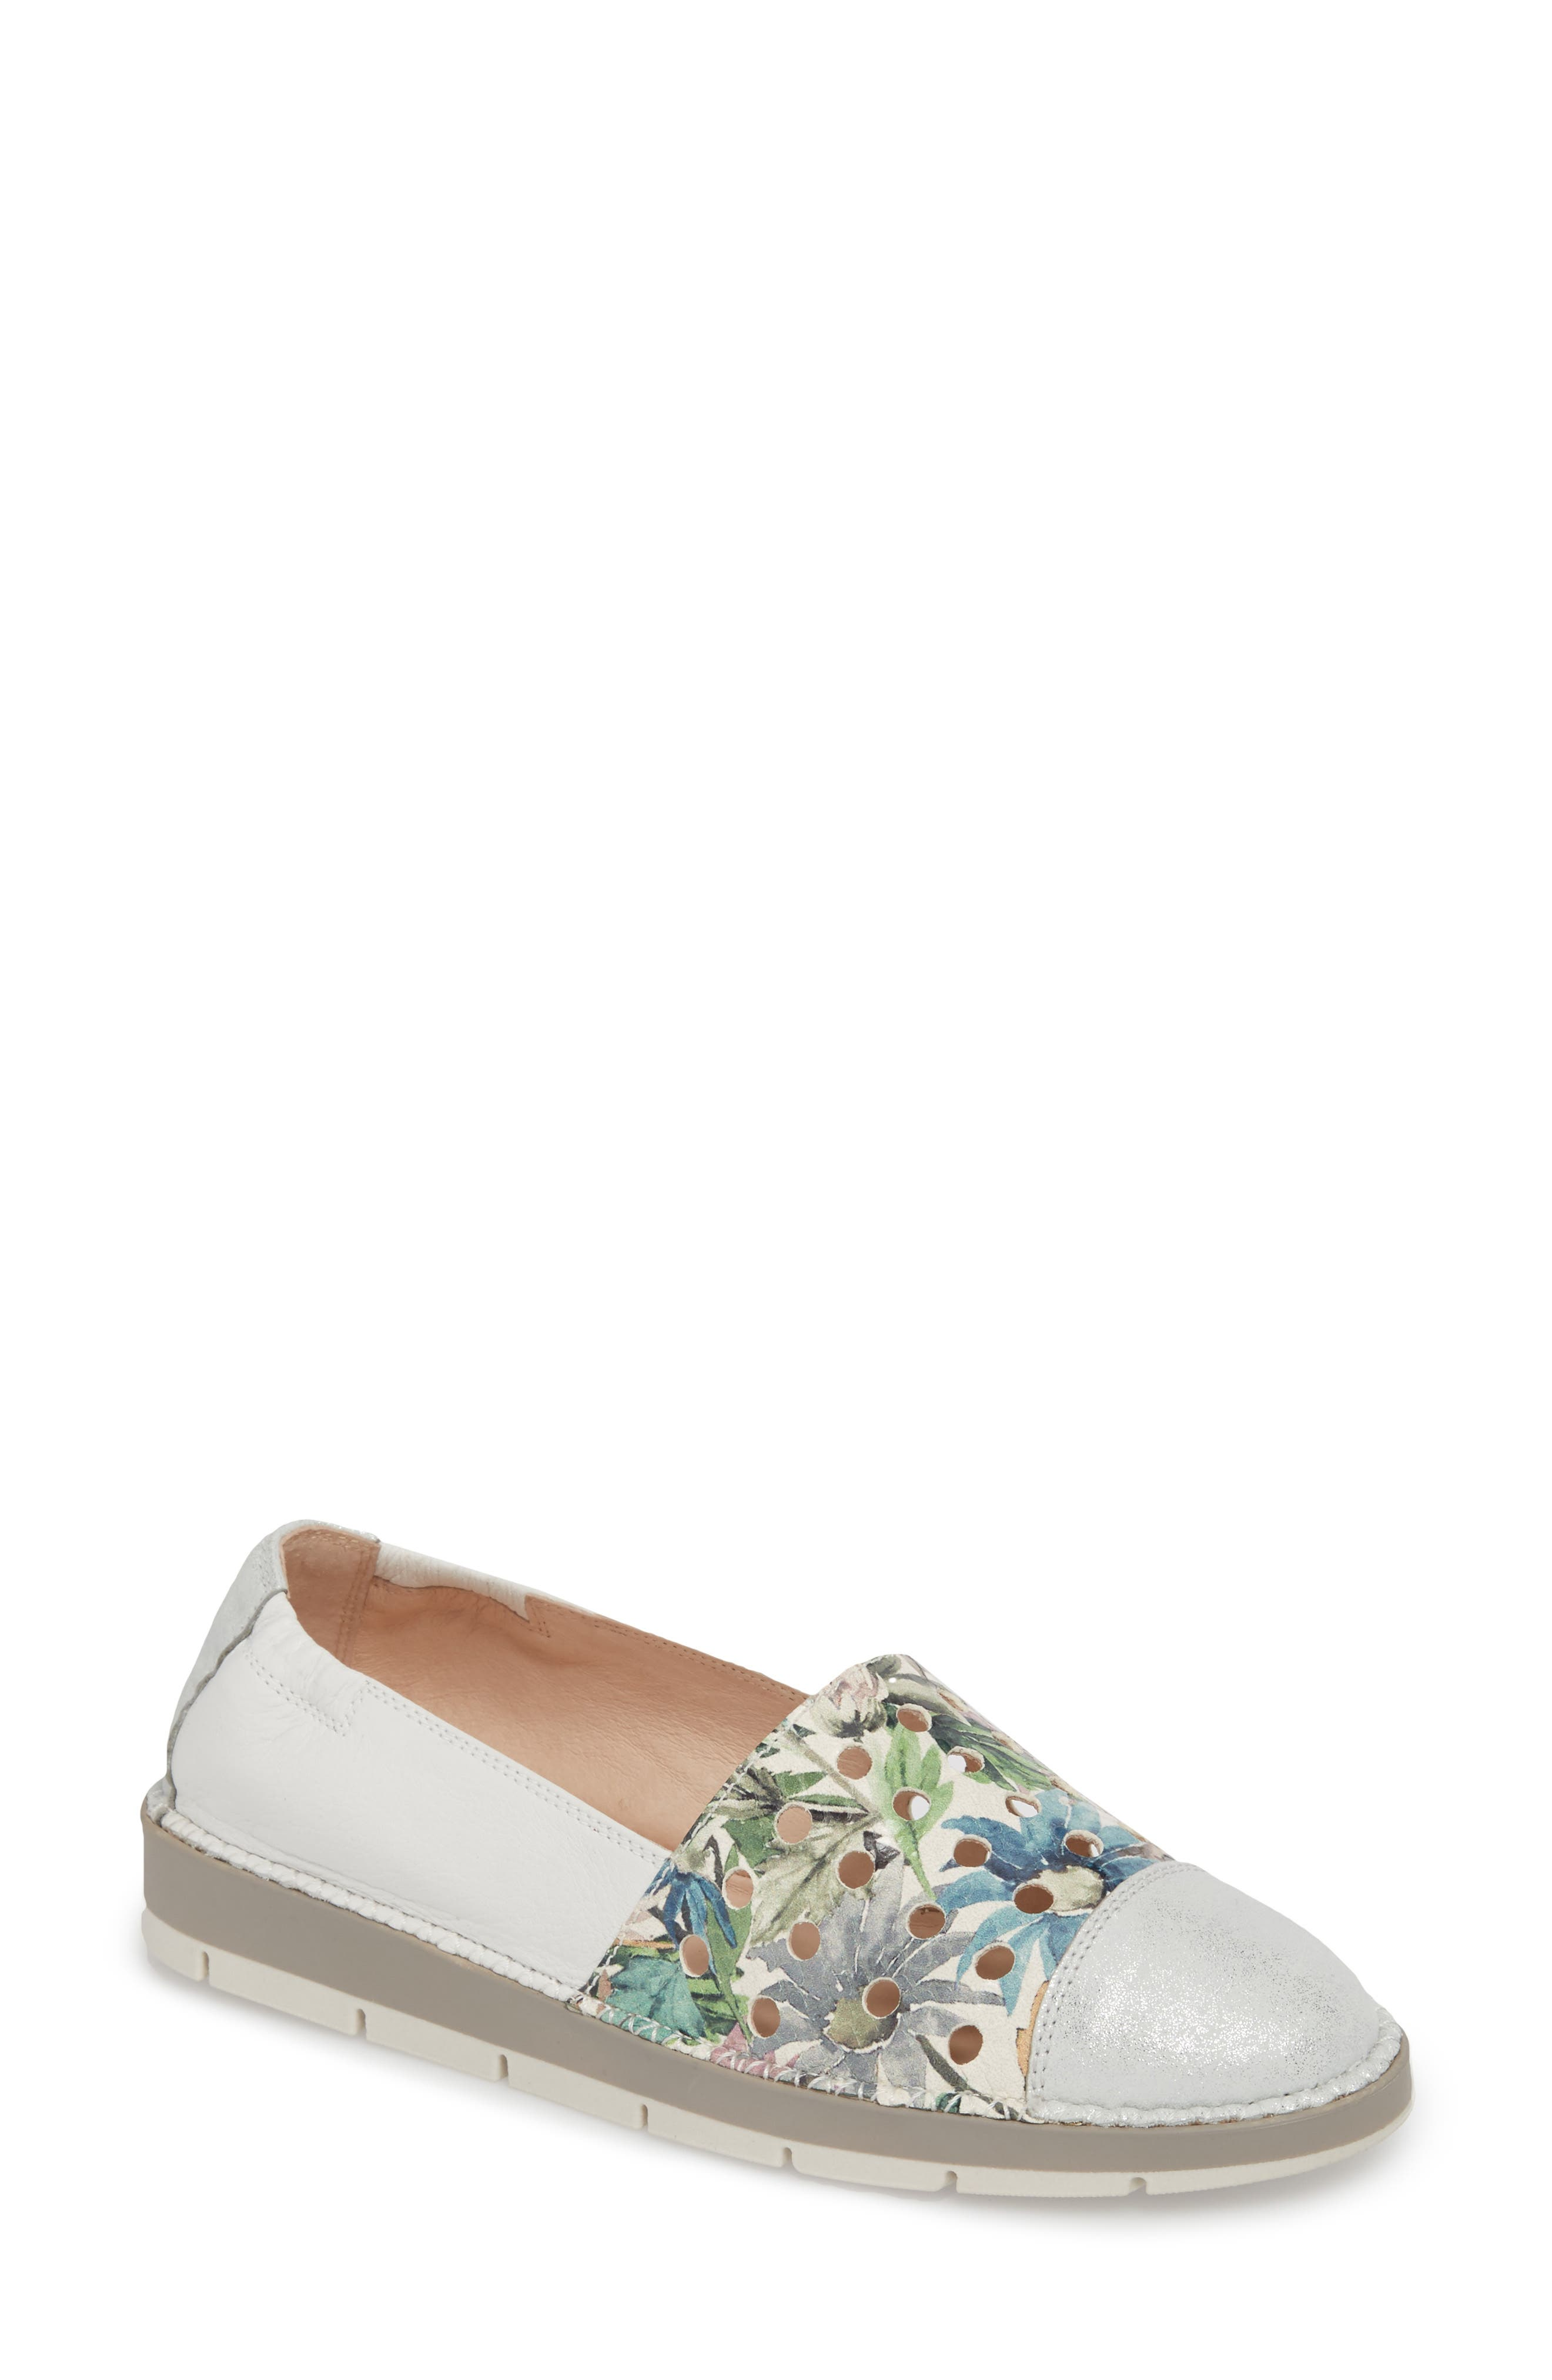 Maiko Flat,                         Main,                         color, STAR SILVER/ BLOSSOM LEATHER